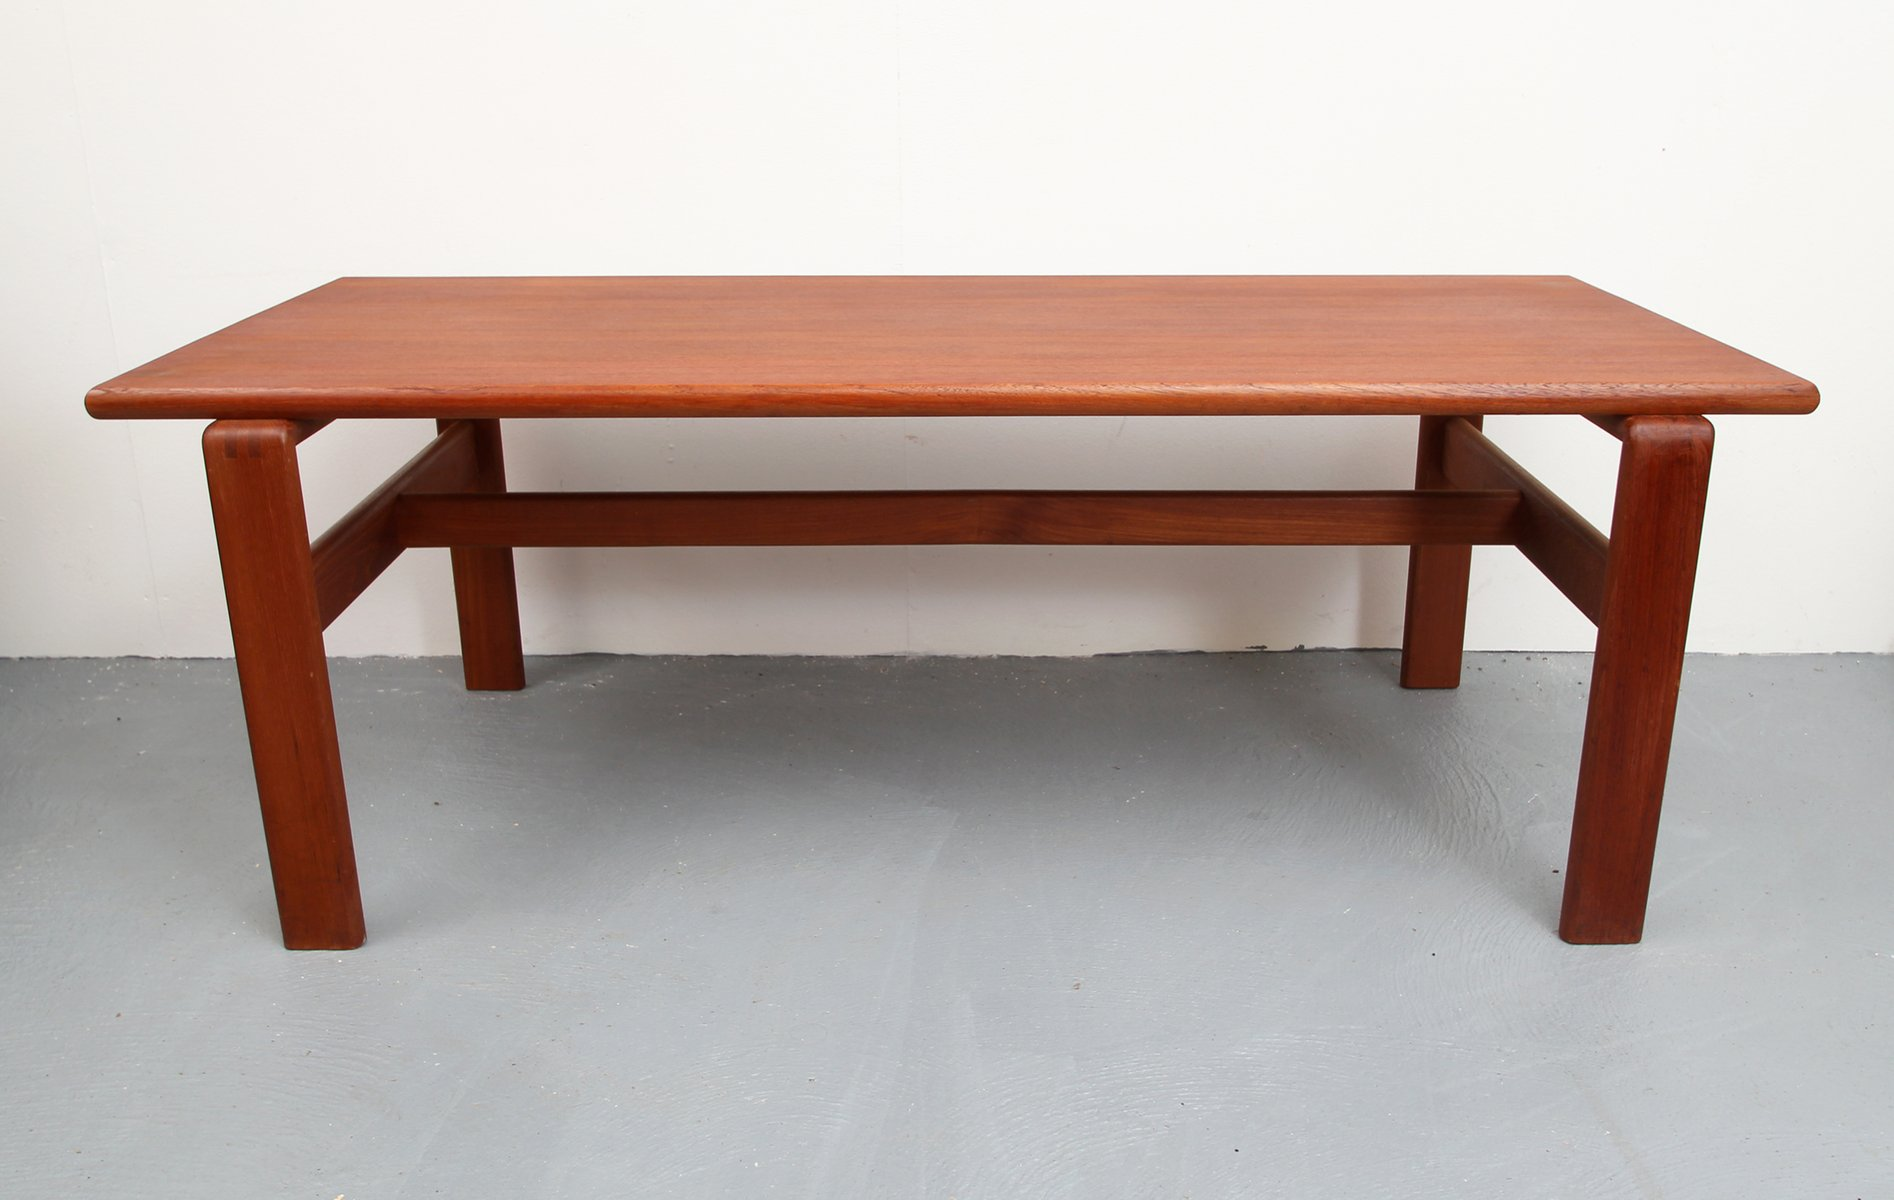 Danish Teak Coffee Table from Komfort 1960s for sale at Pamono